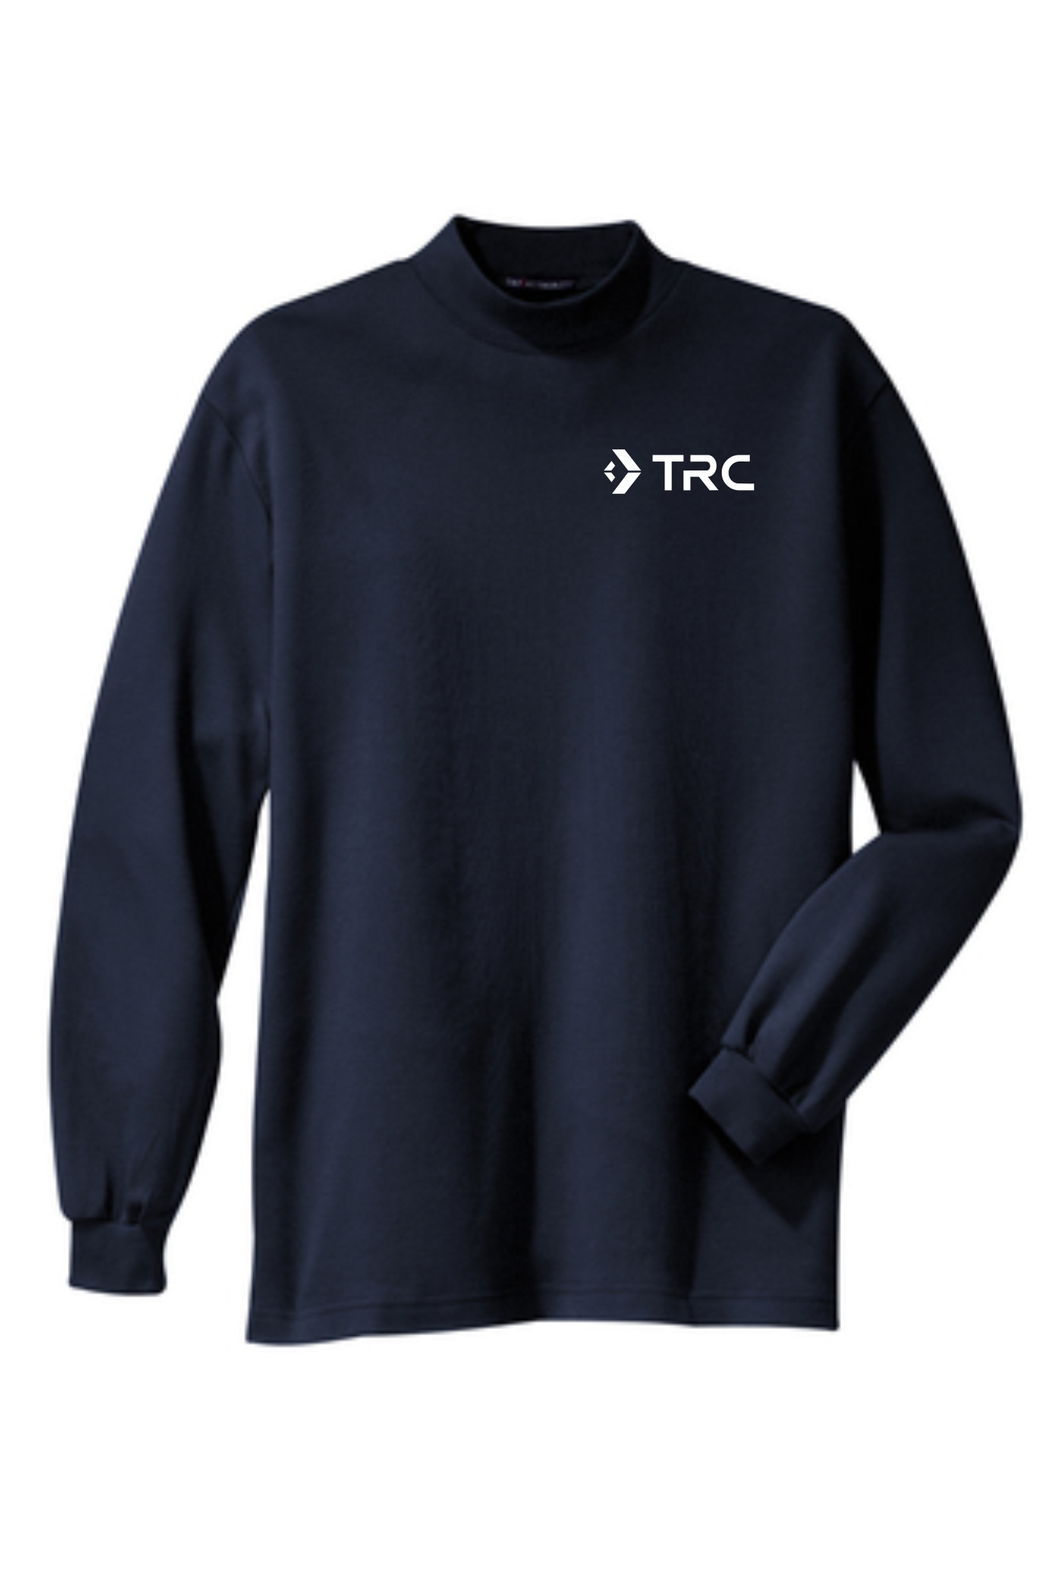 TRC - Port Authority Interlock Knit Mock Turtleneck